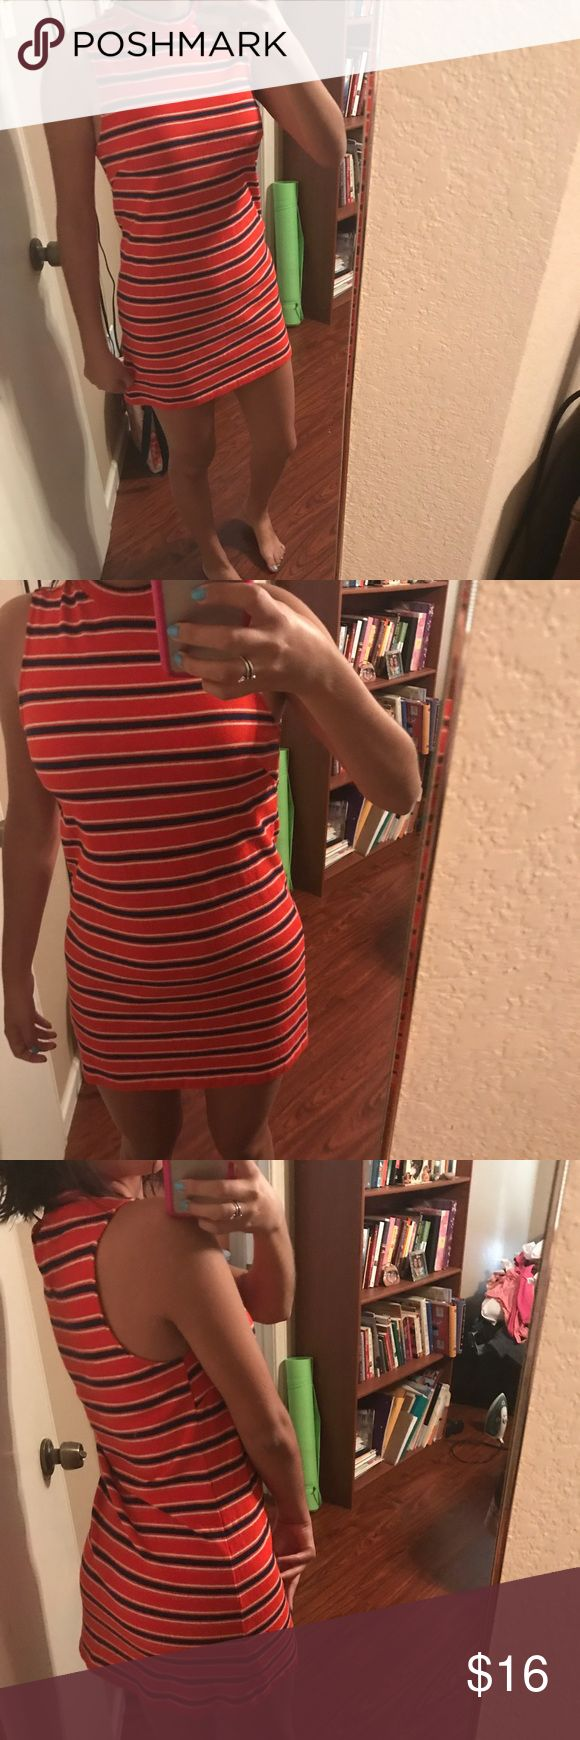 """Red & blue striped mini dress This is such a comfy dress. If you're on the taller side you could even tuck it into some cute pants and wear as a cute tank top! As shown in the picture, I am 5'4"""" and that's how it looks on me. Forever 21 Dresses Mini"""